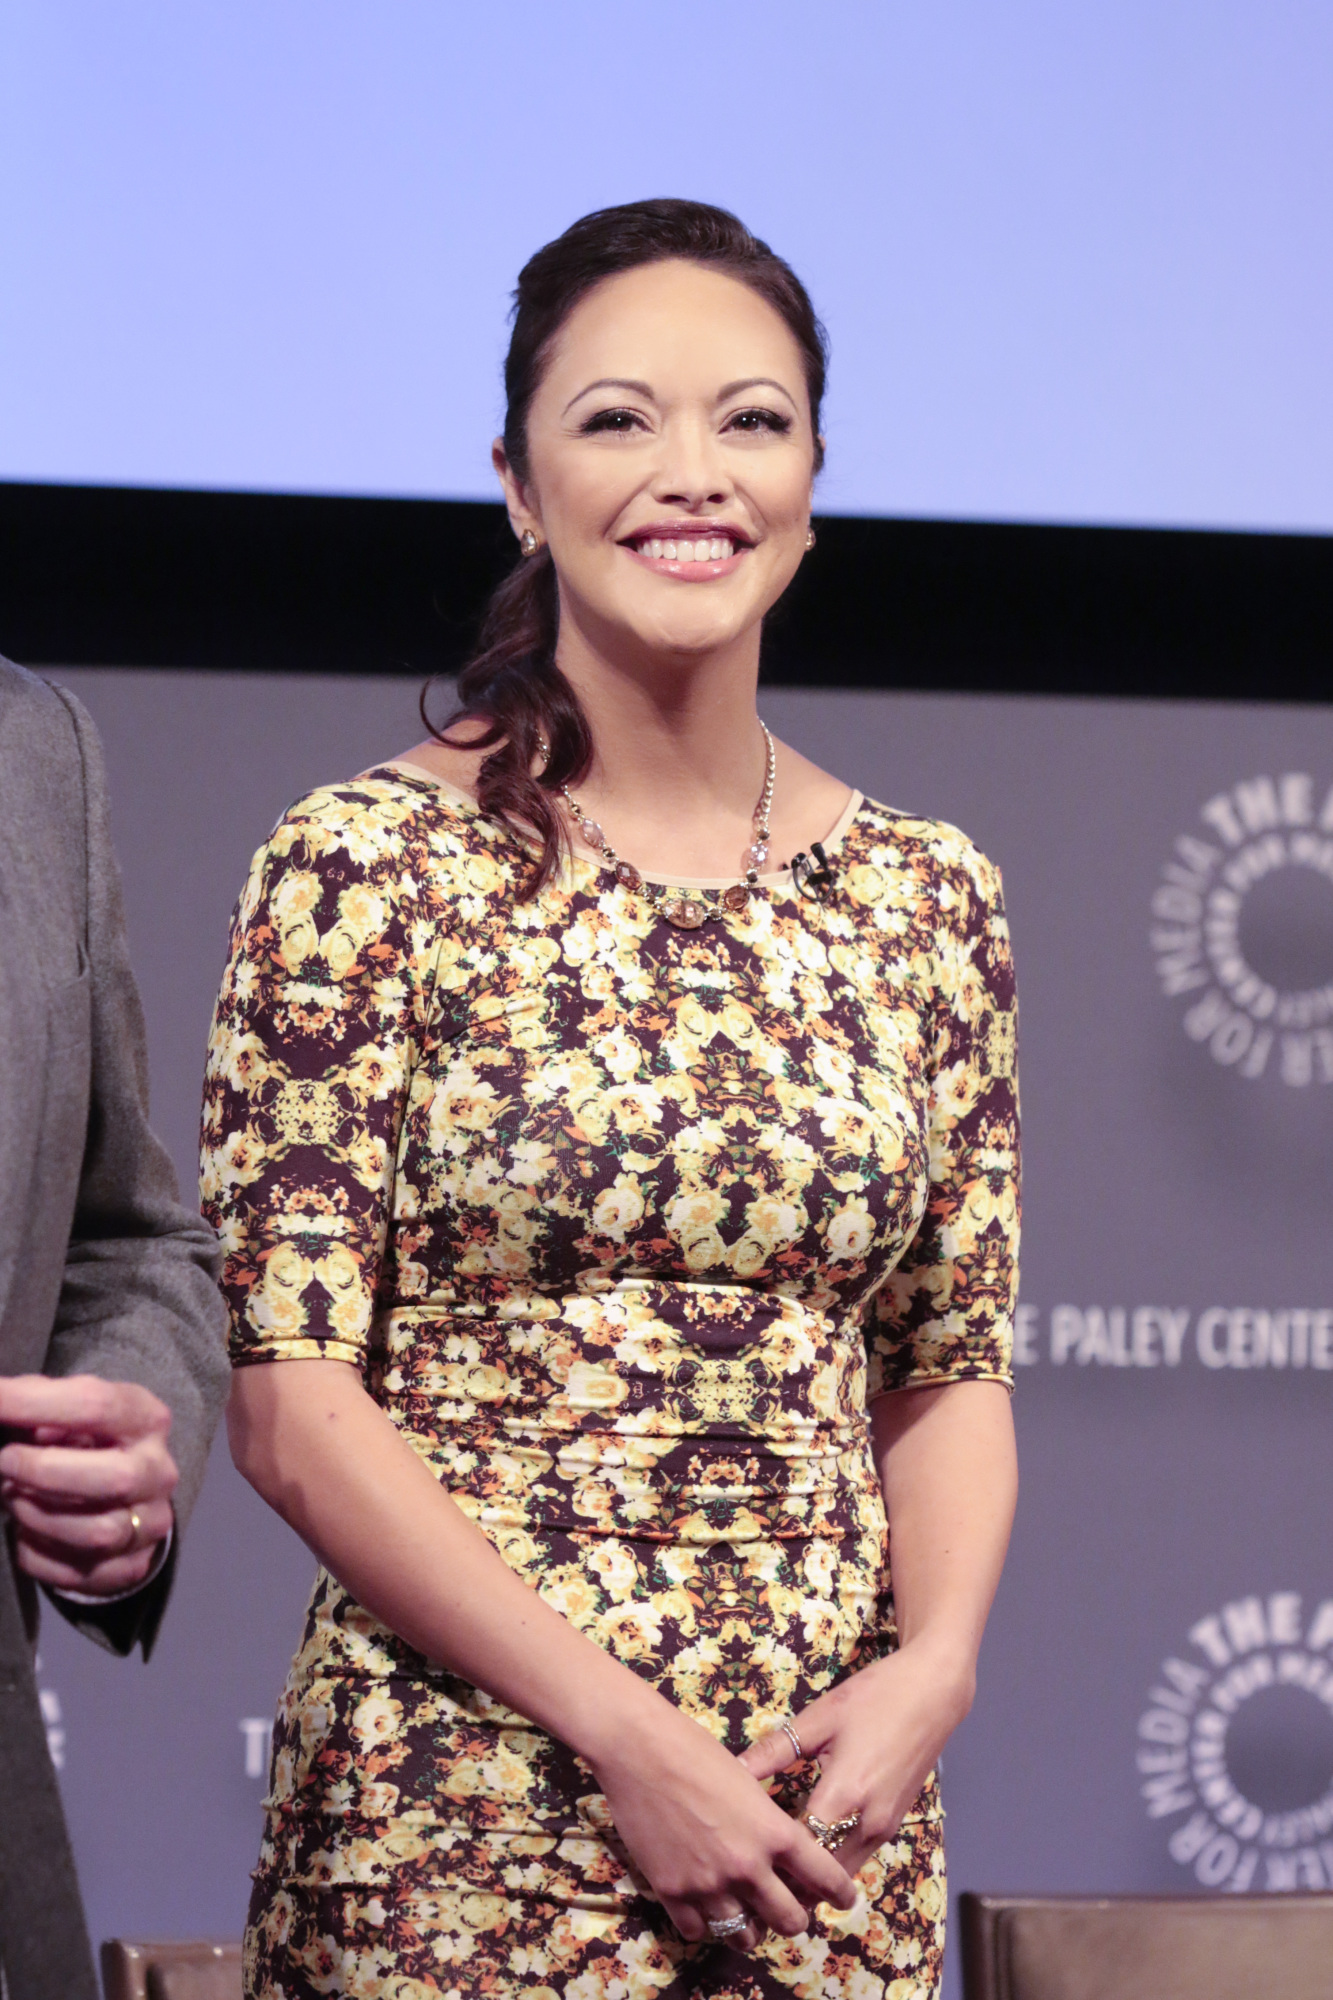 14. You can see Marisa Ramirez is genuinely excited to be on stage at the Paley Center.